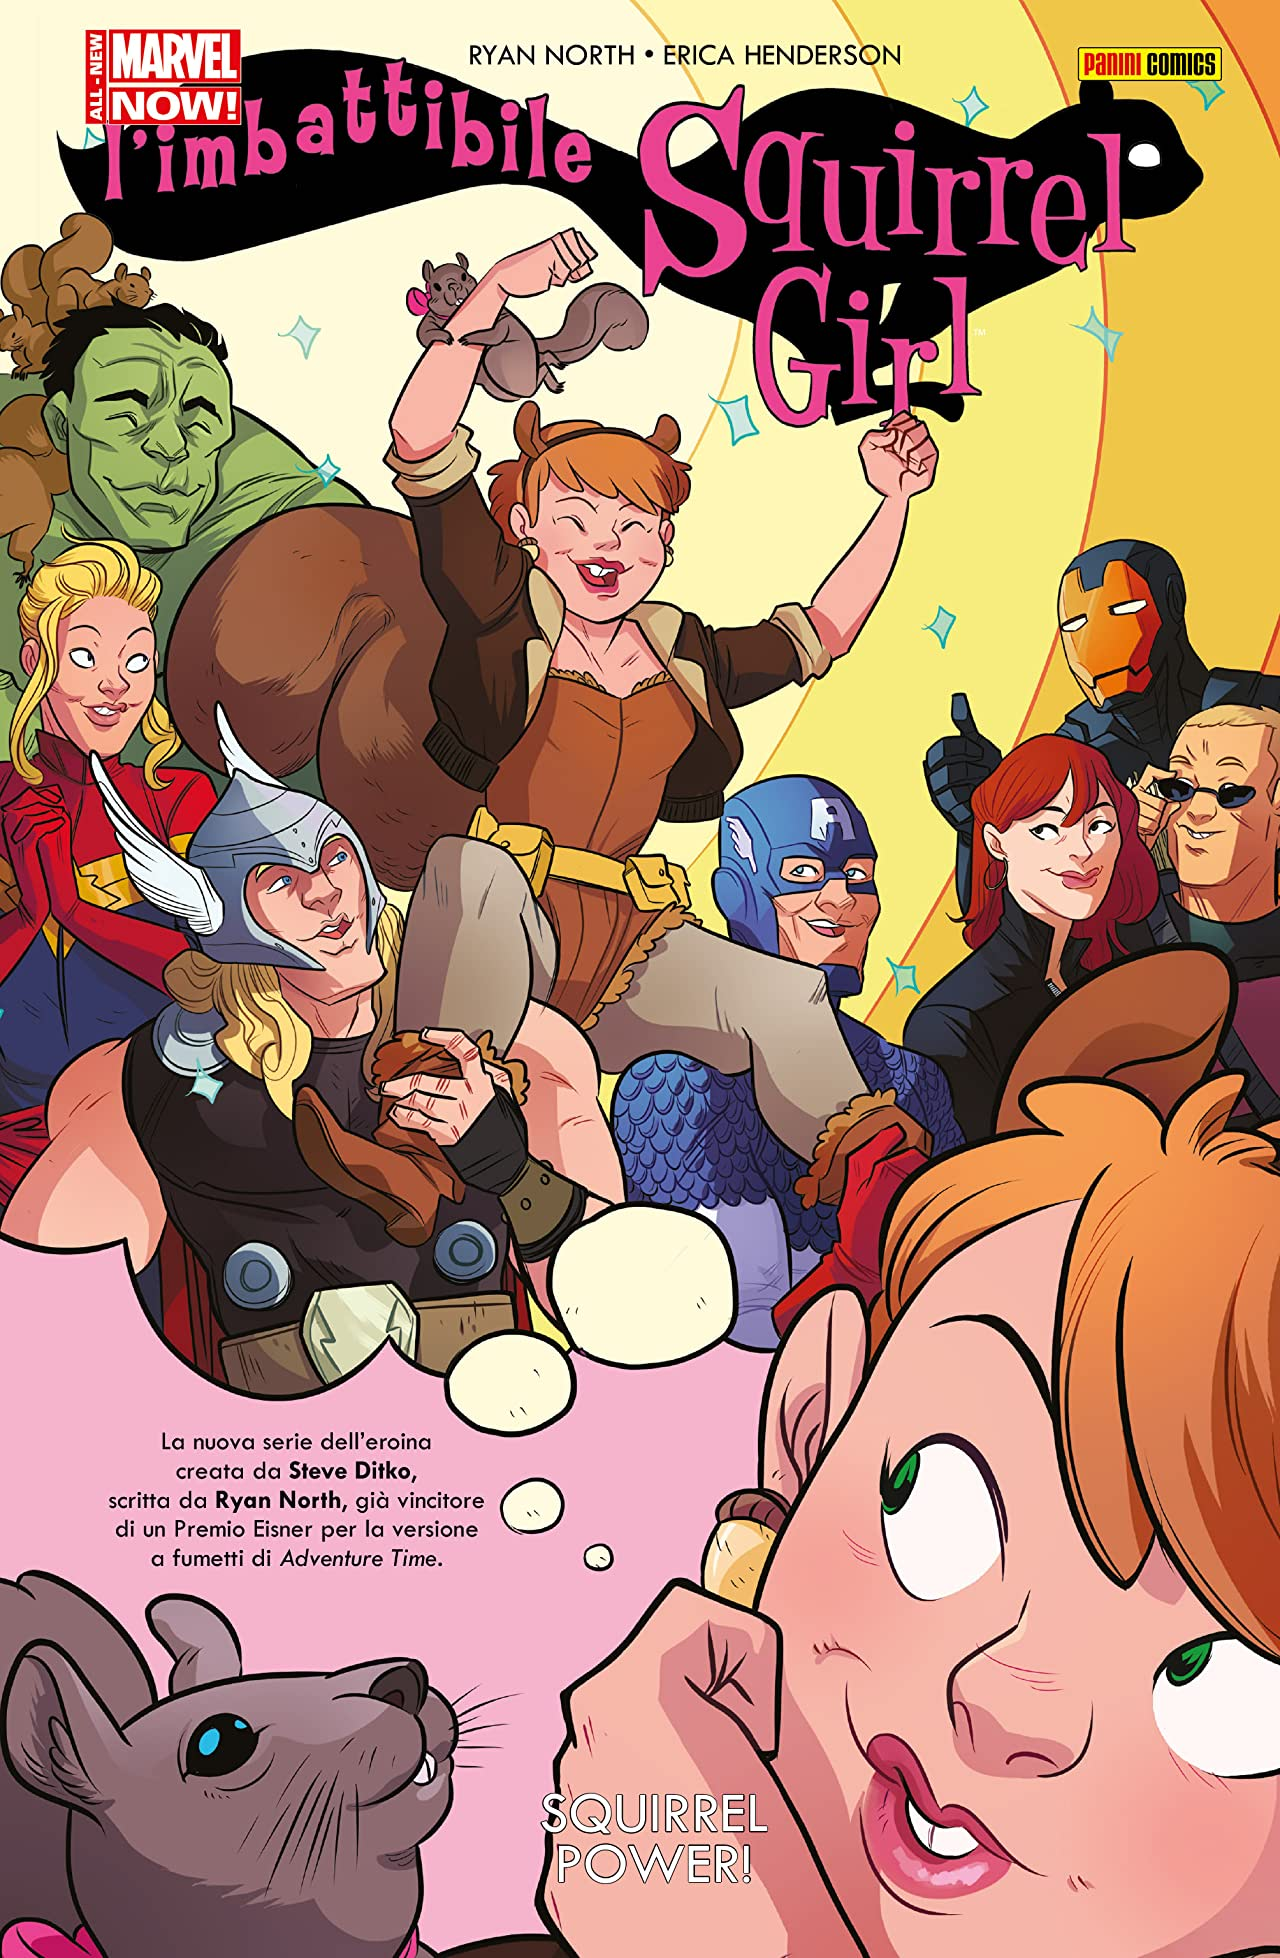 Squirrel Girl Vol. 1